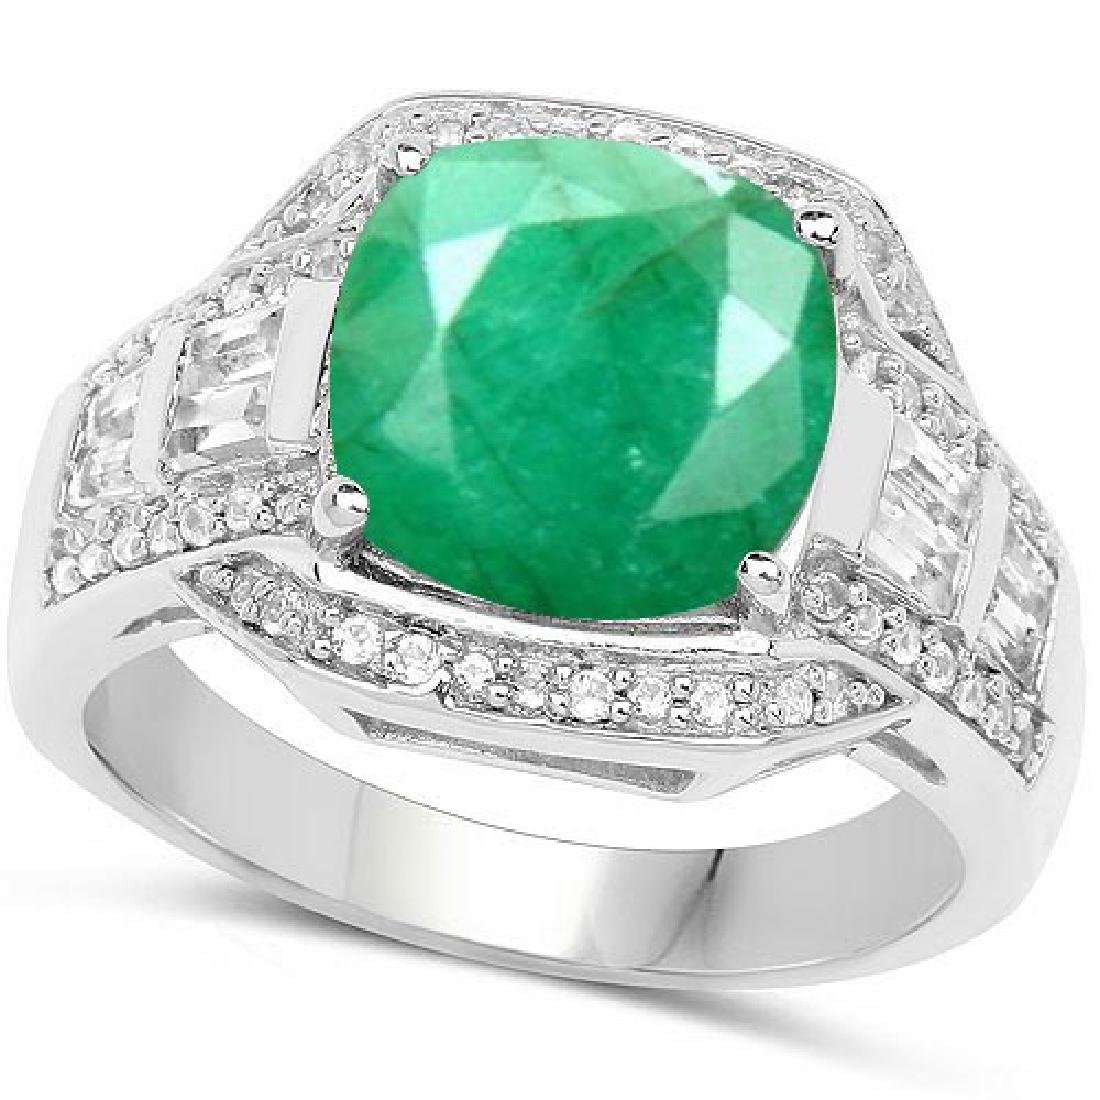 Certified 5.80 CTW Genuine Emerald And Diamond 14K Whit